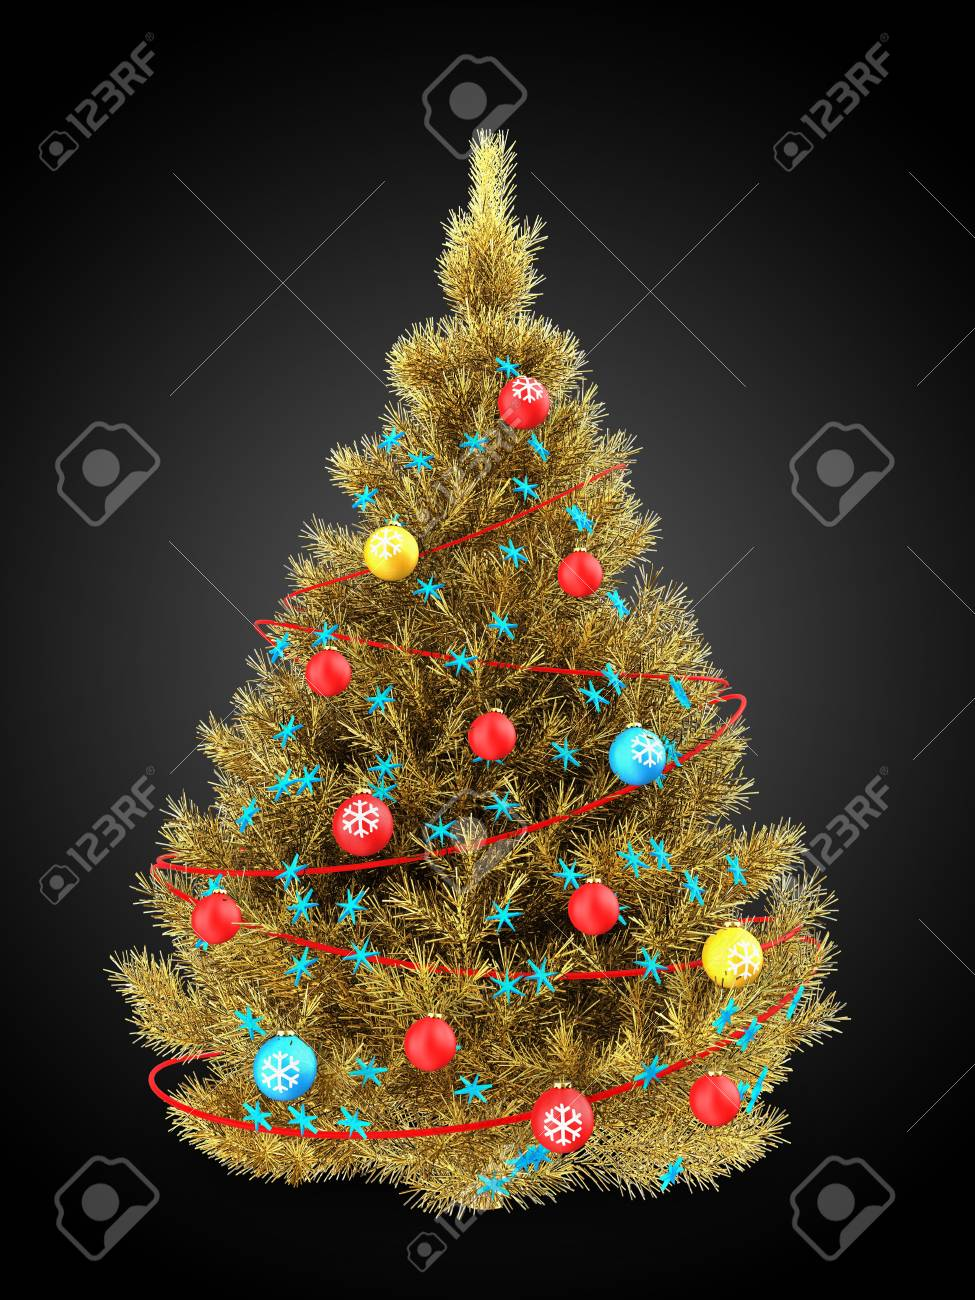 3d Illustration Of Golden Christmas Tree With Red Decorations